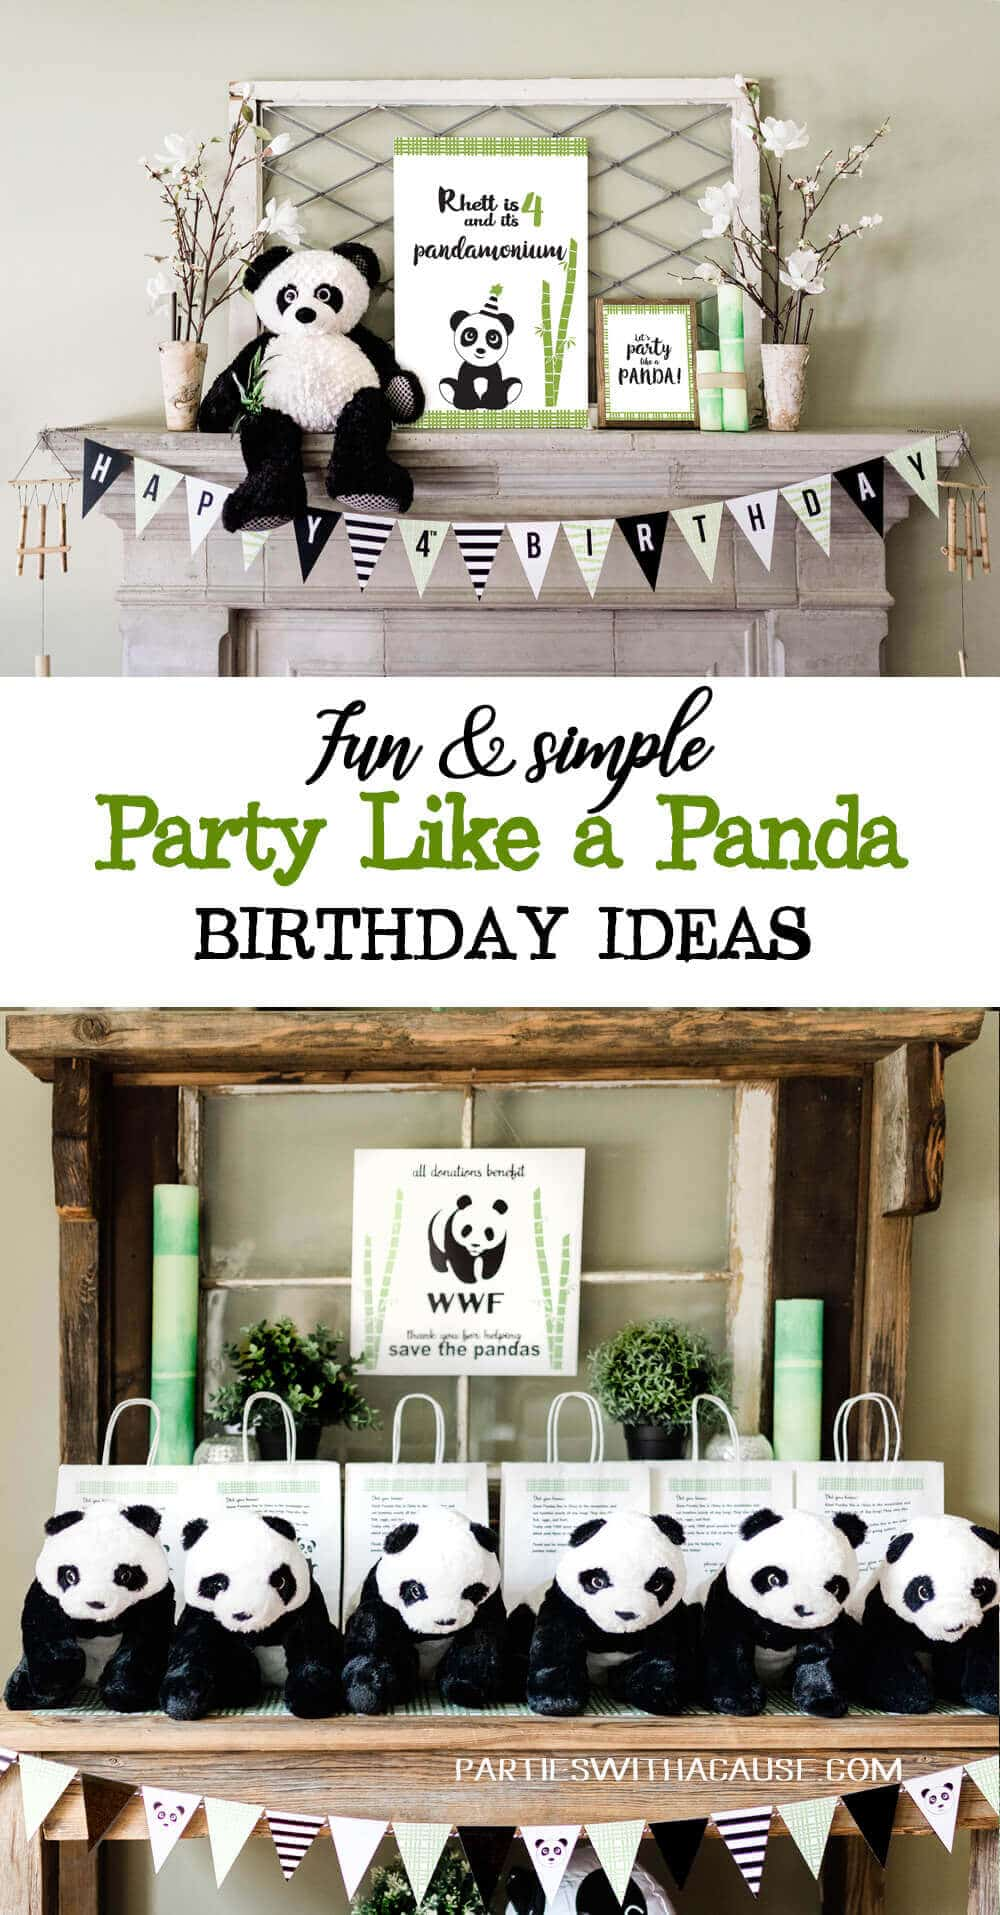 Fun & simple party like a panda birthday ideas